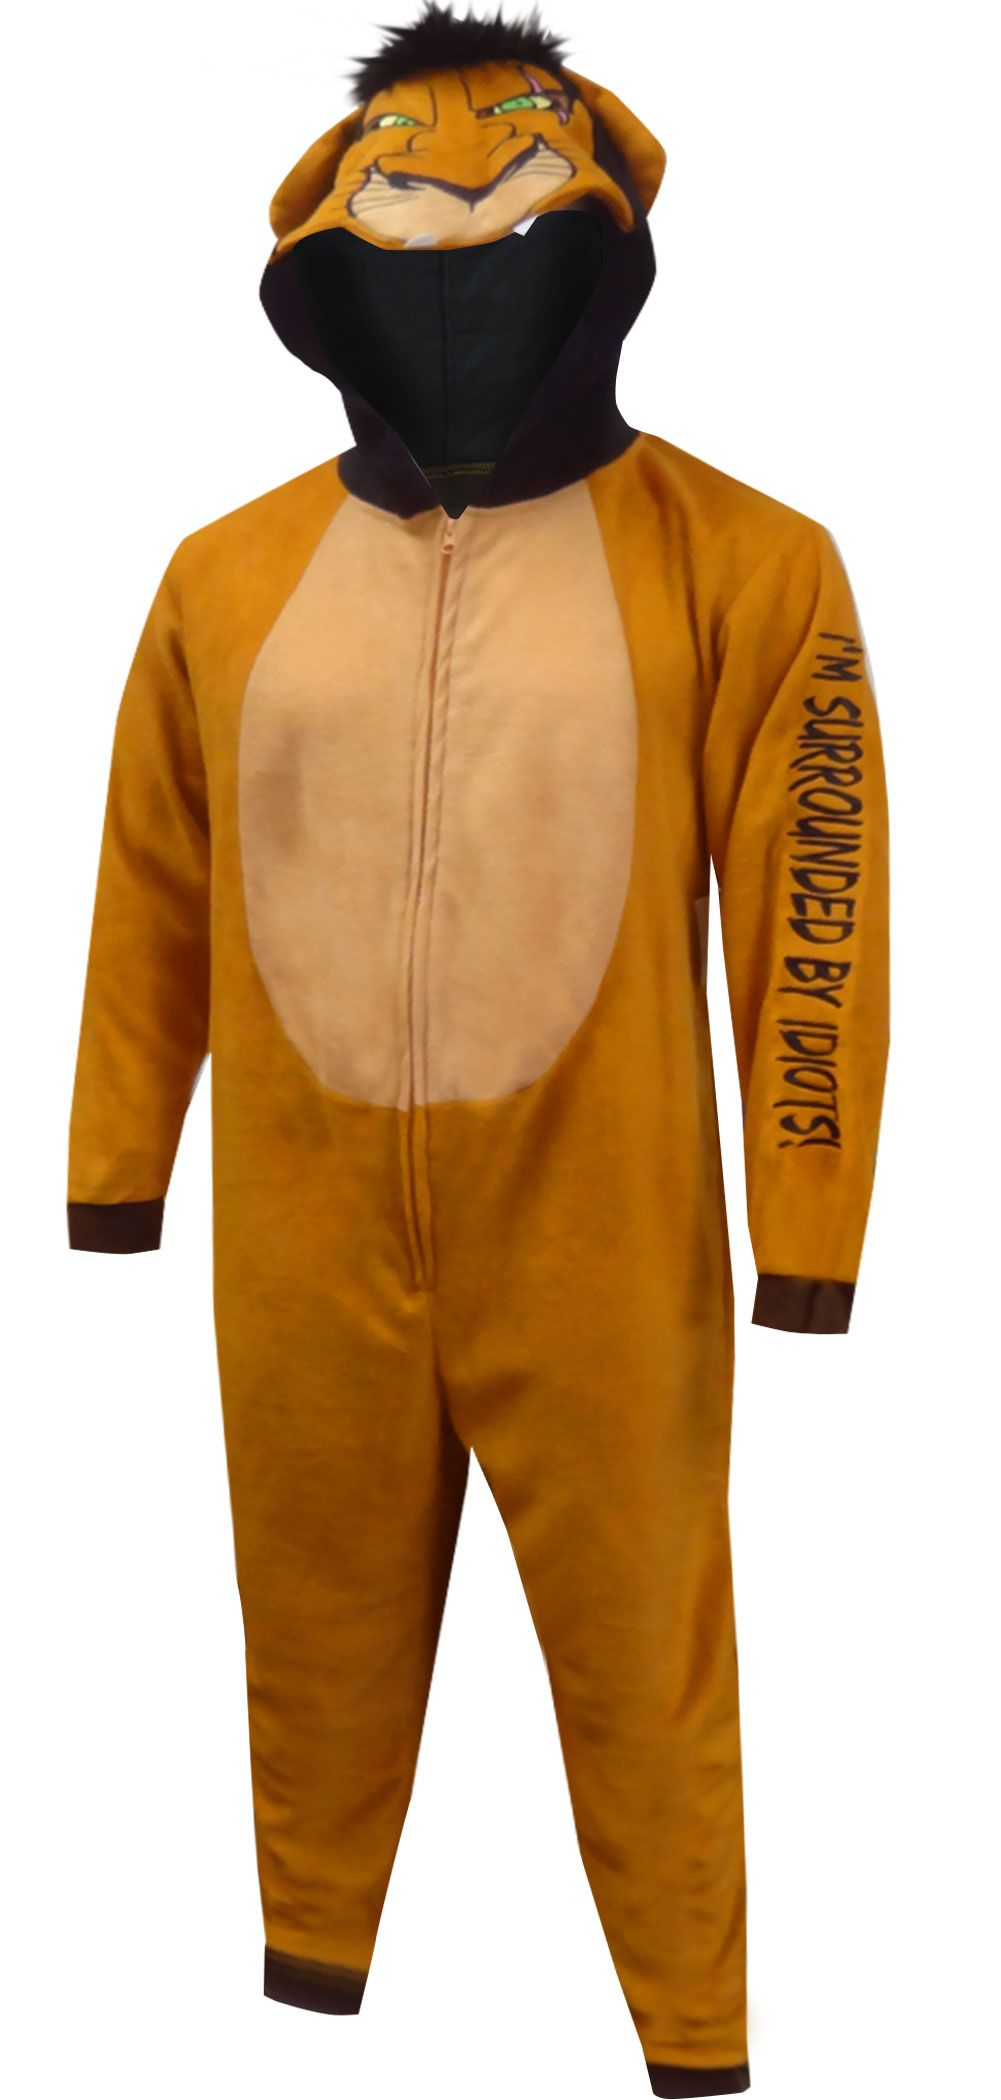 be3dc68a1 Lion King Scar the Villain Onesie Pajama in 2019 | Adult Footie ...